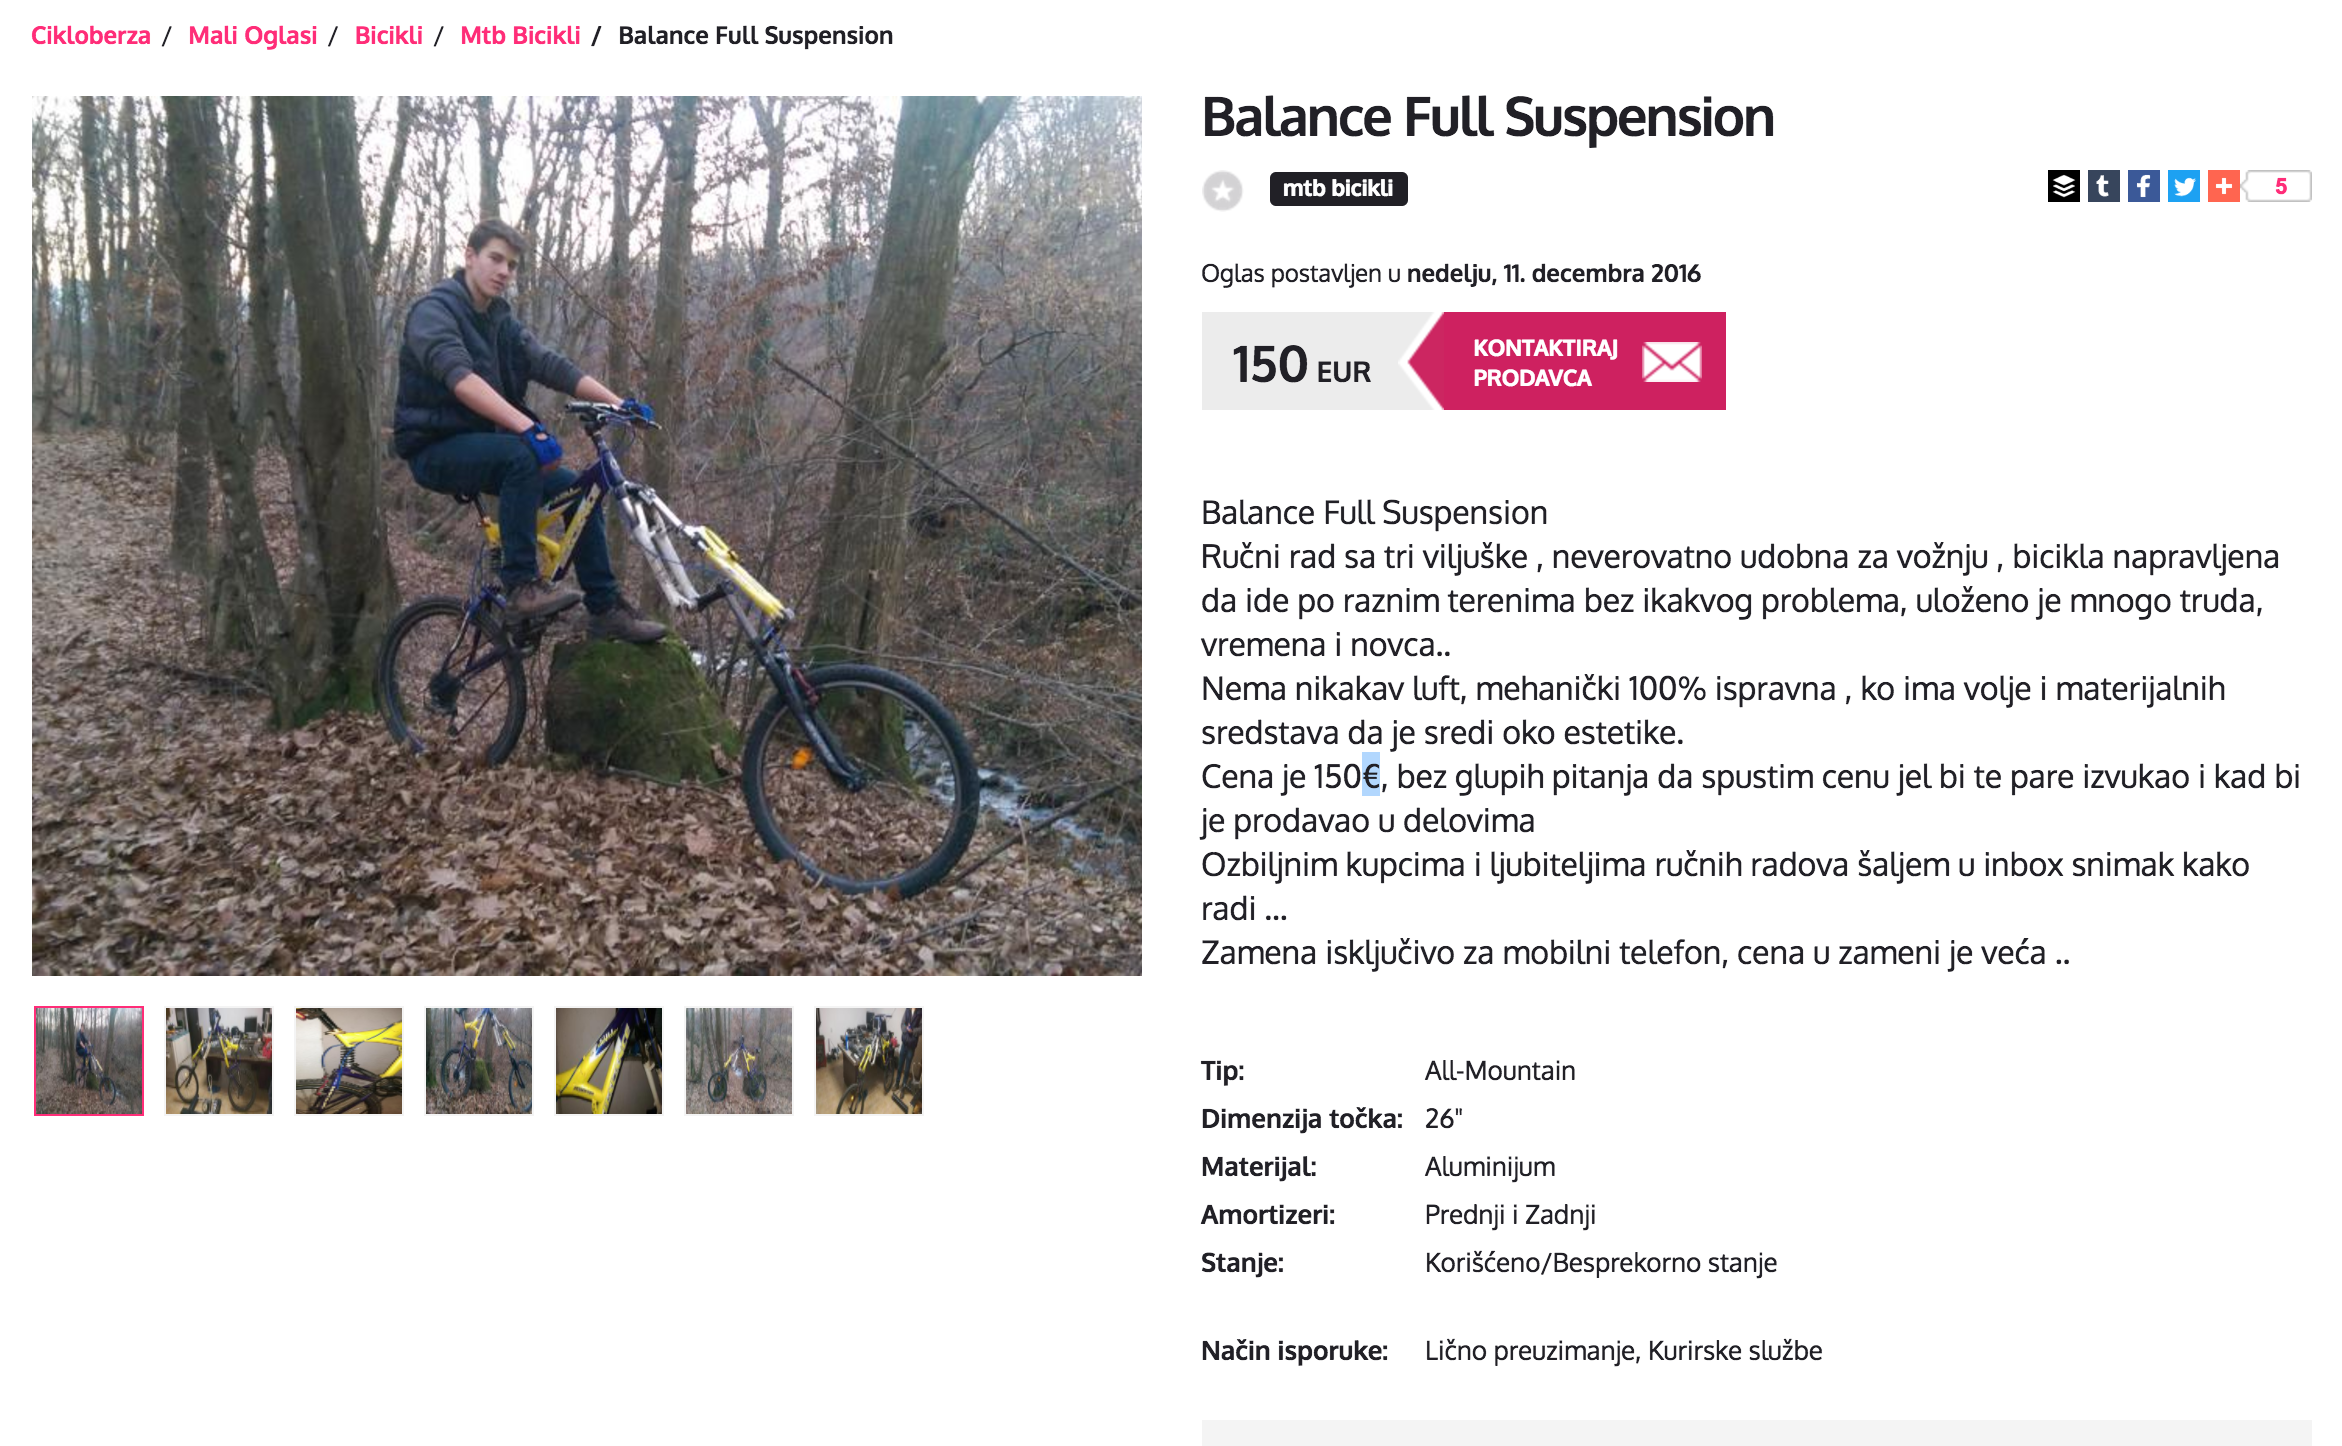 Full suspension mountain bike extra forks advert